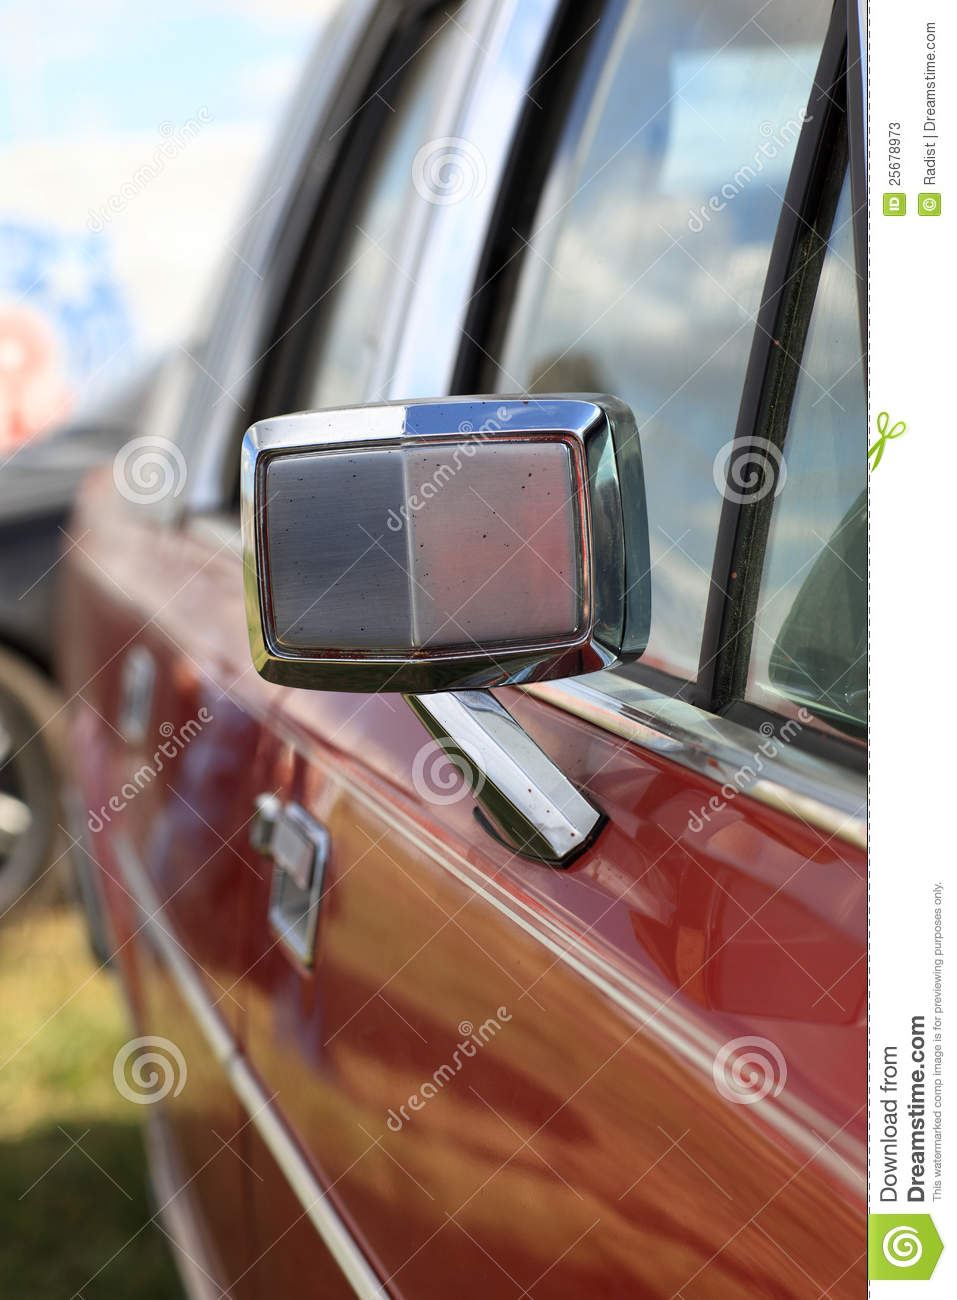 how to put a side view mirror on a car